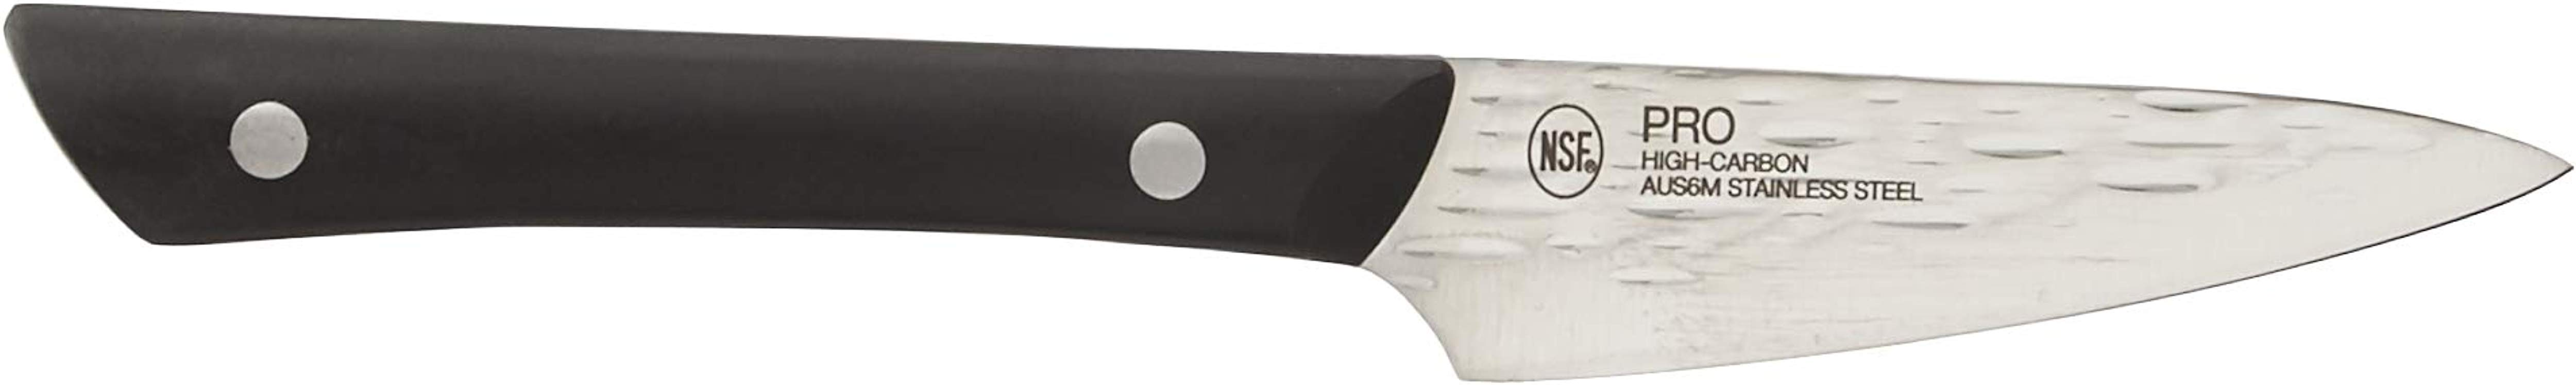 Kai HT7068 Professional Paring Knife One Size Silver